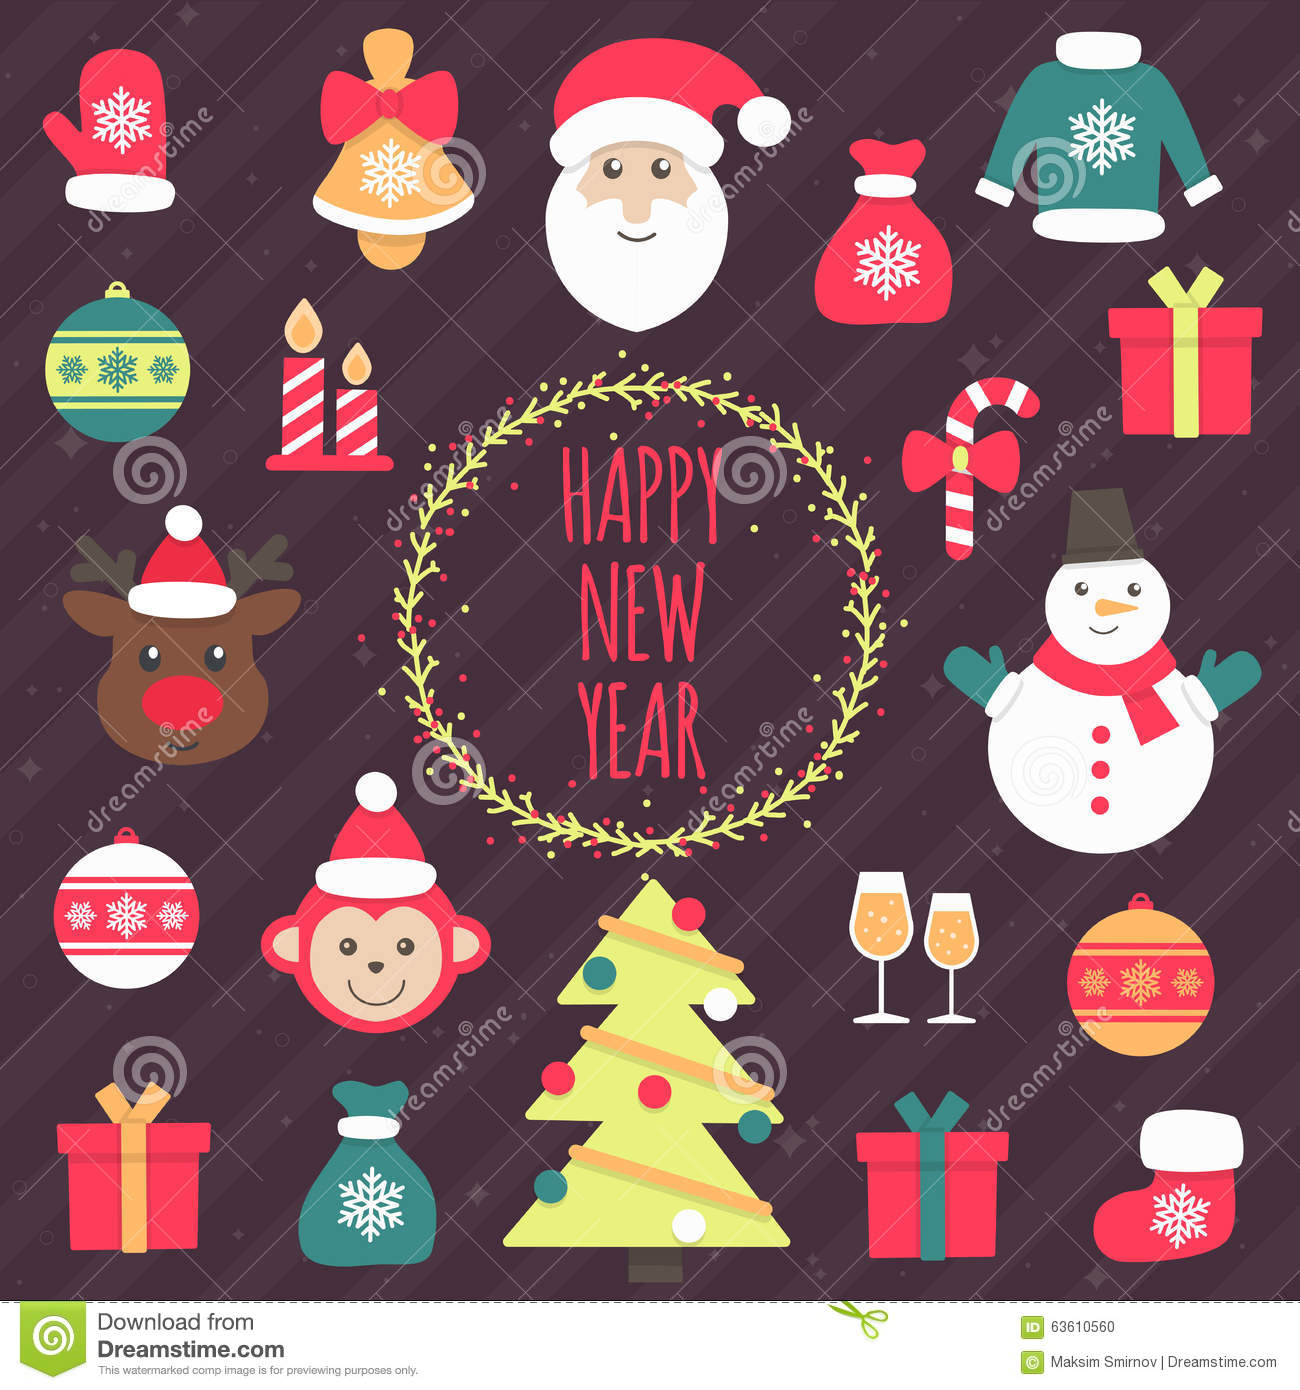 Merry christmas and happy new year icon collection with holiday